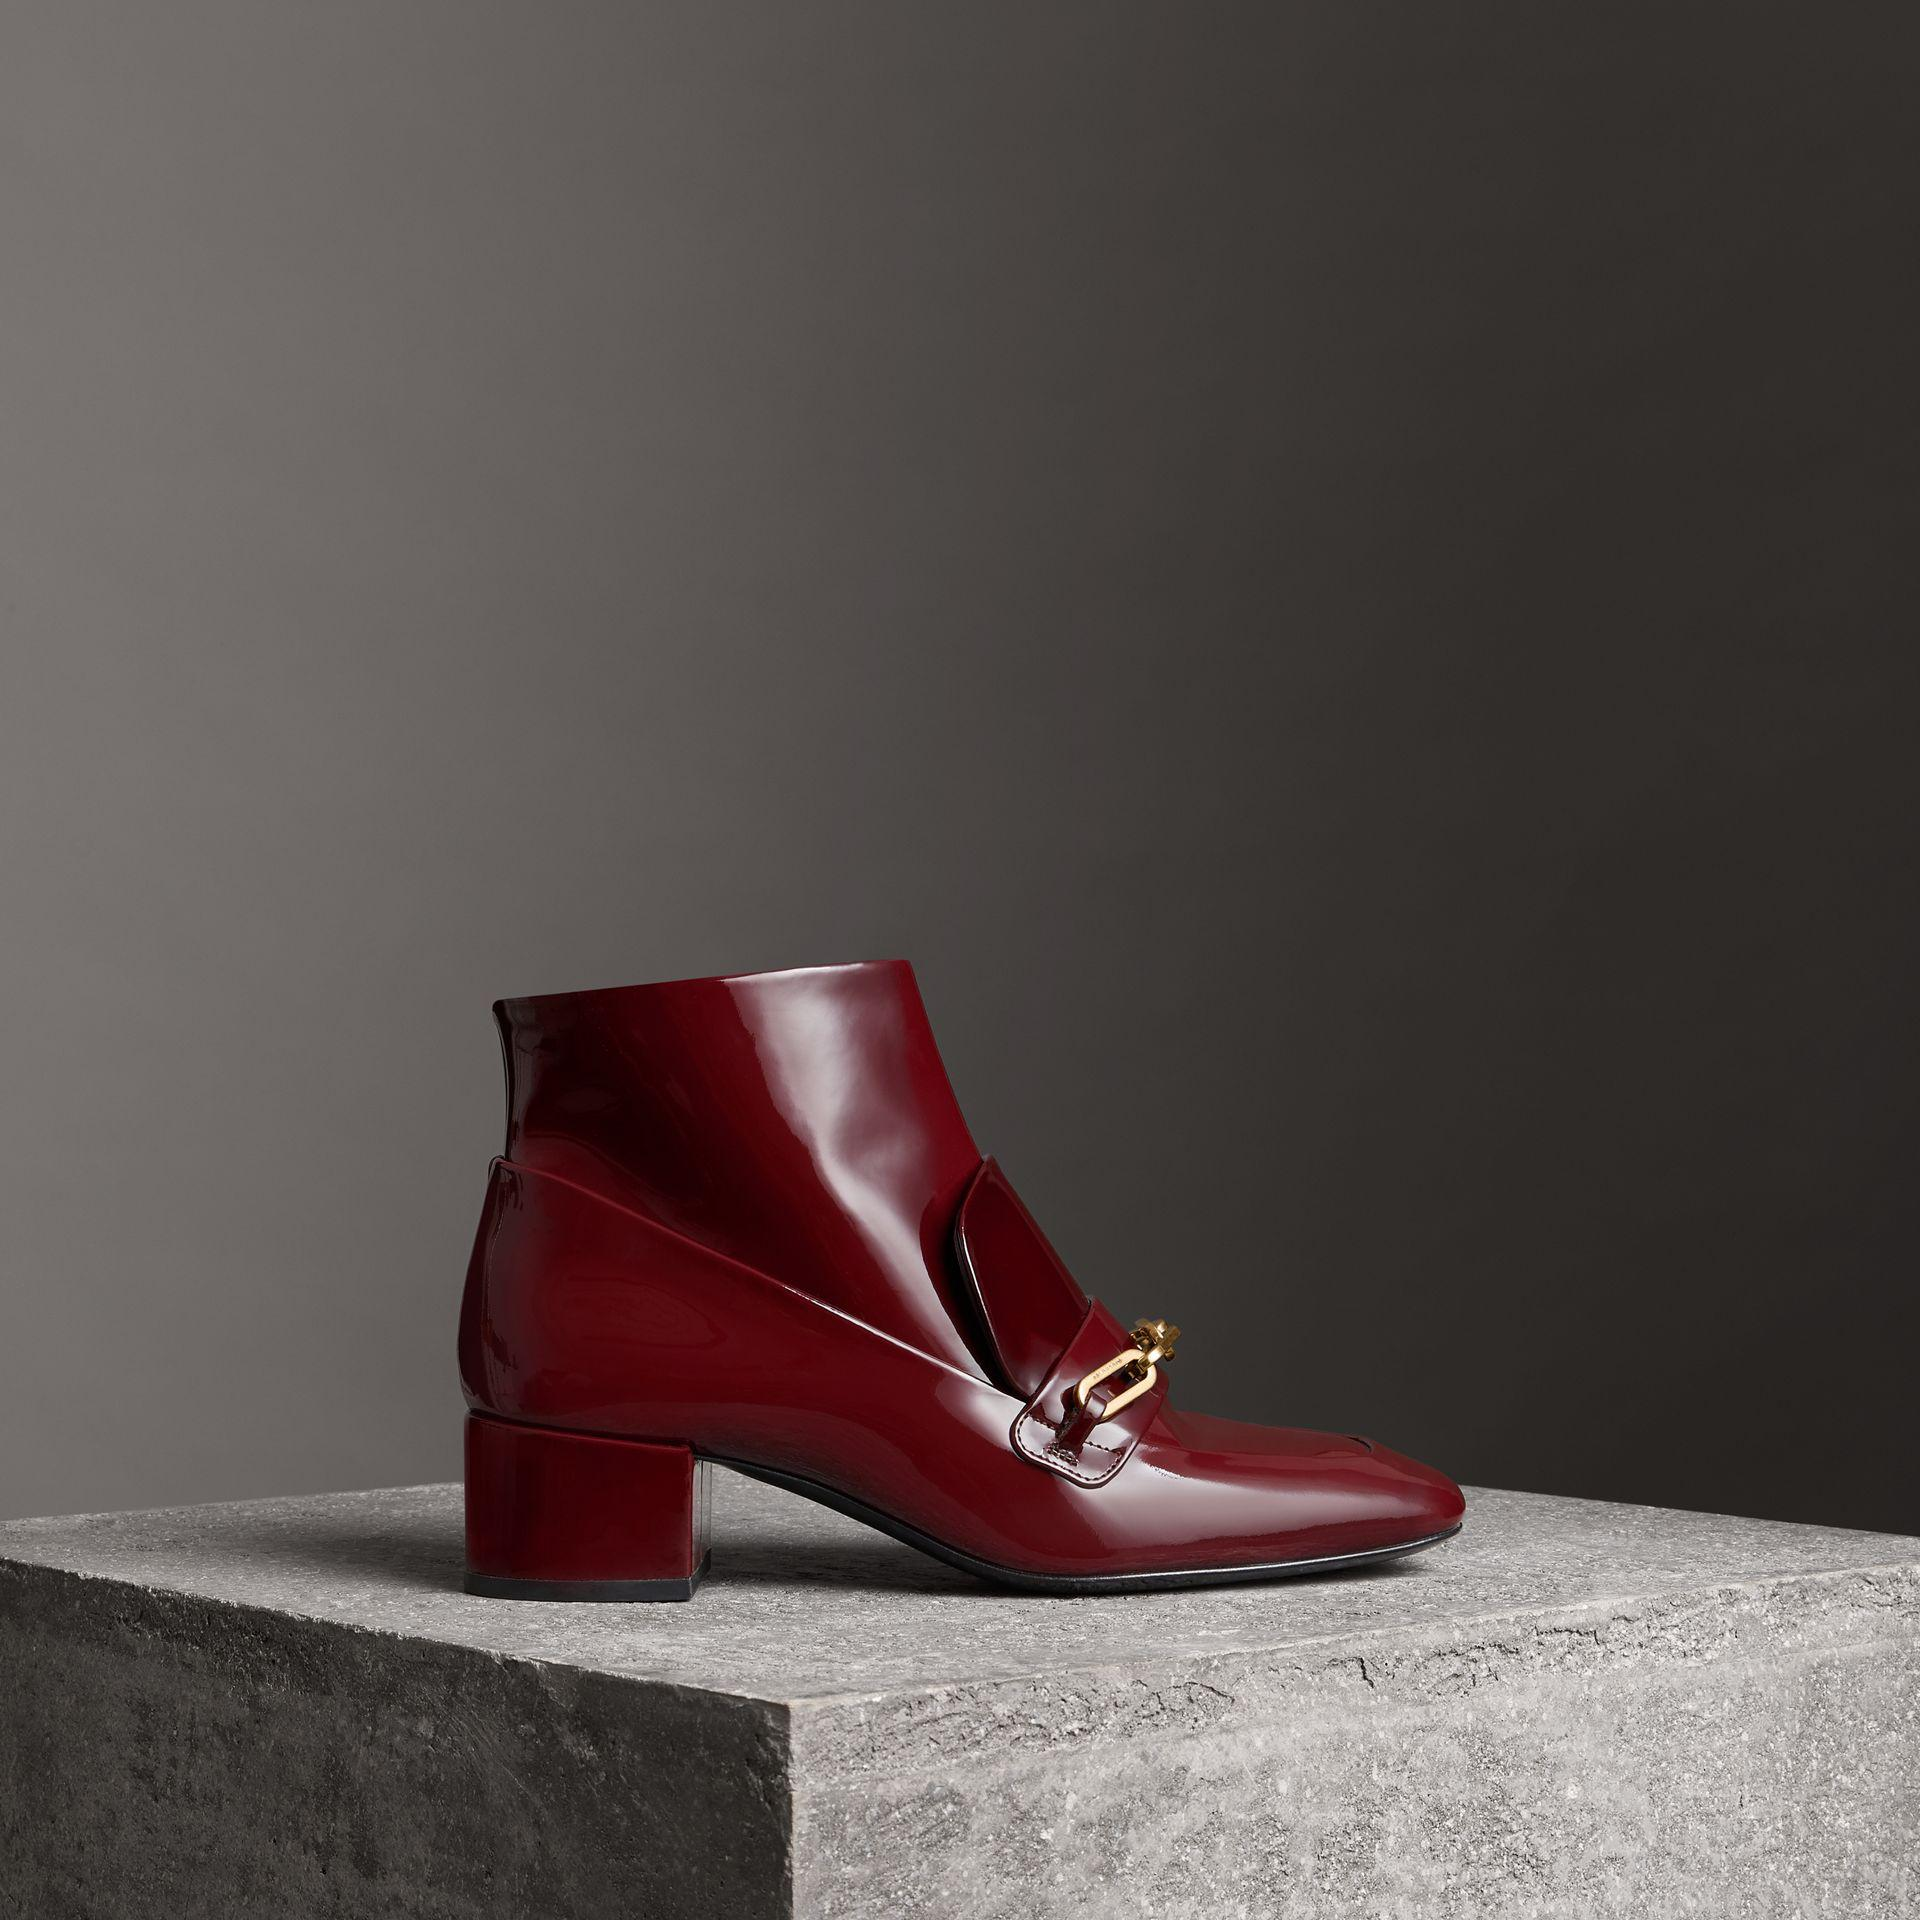 Burberry Link Detail Patent Leather Ankle Boots yFM9vQwDDs